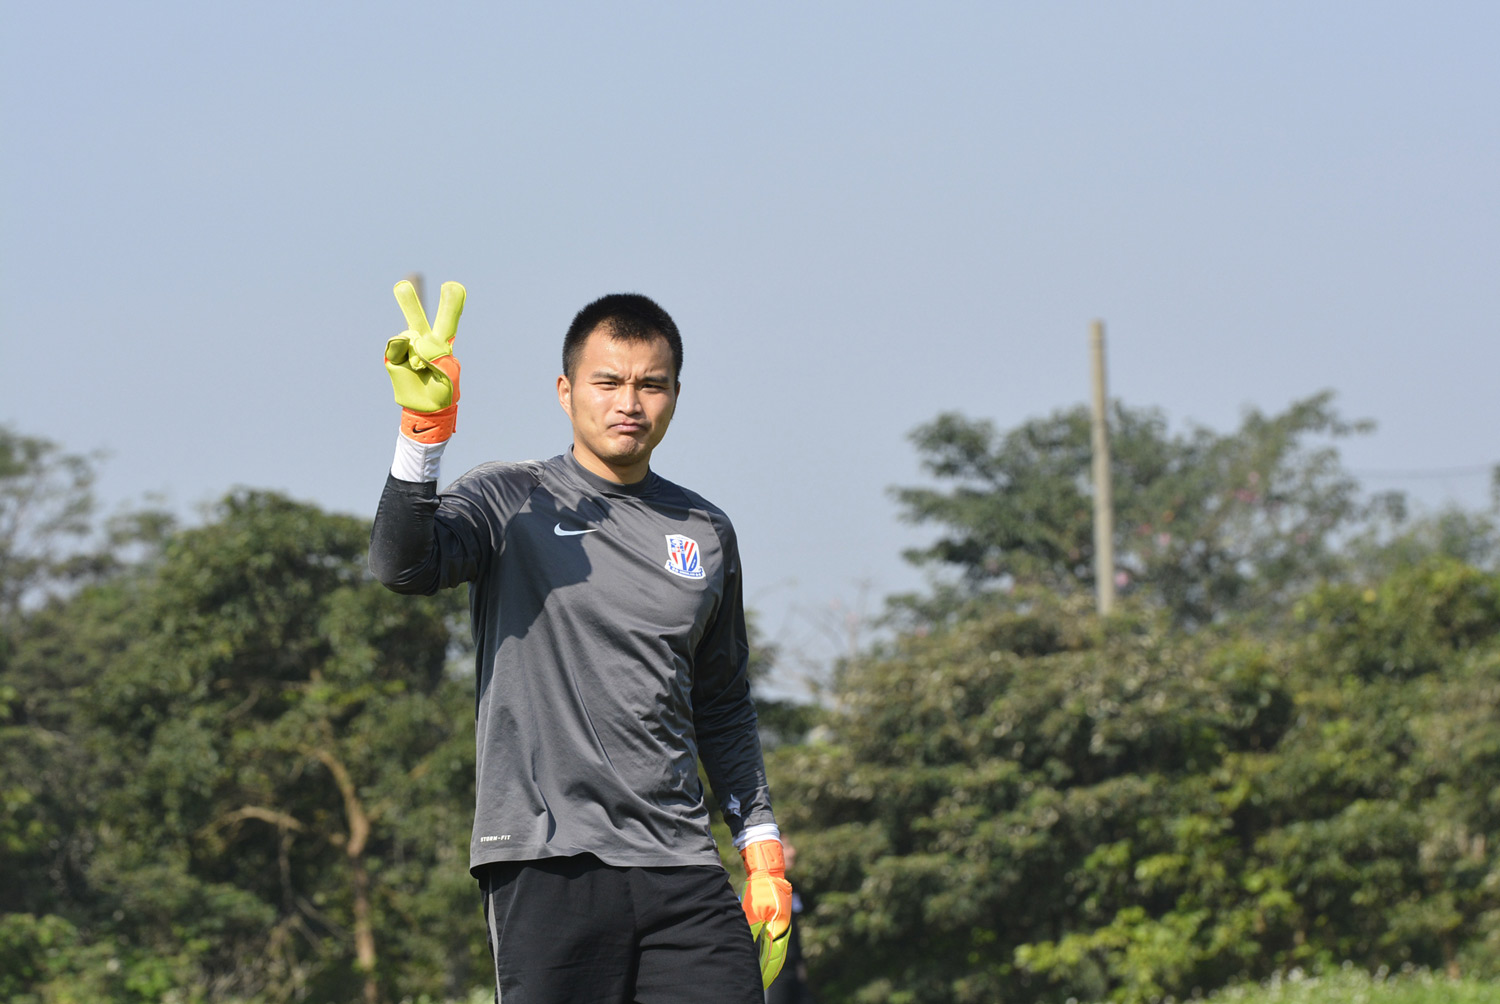 The goalkeeper of the Shanghai Greenland Shenhua Football Club, Qiu Shengji.